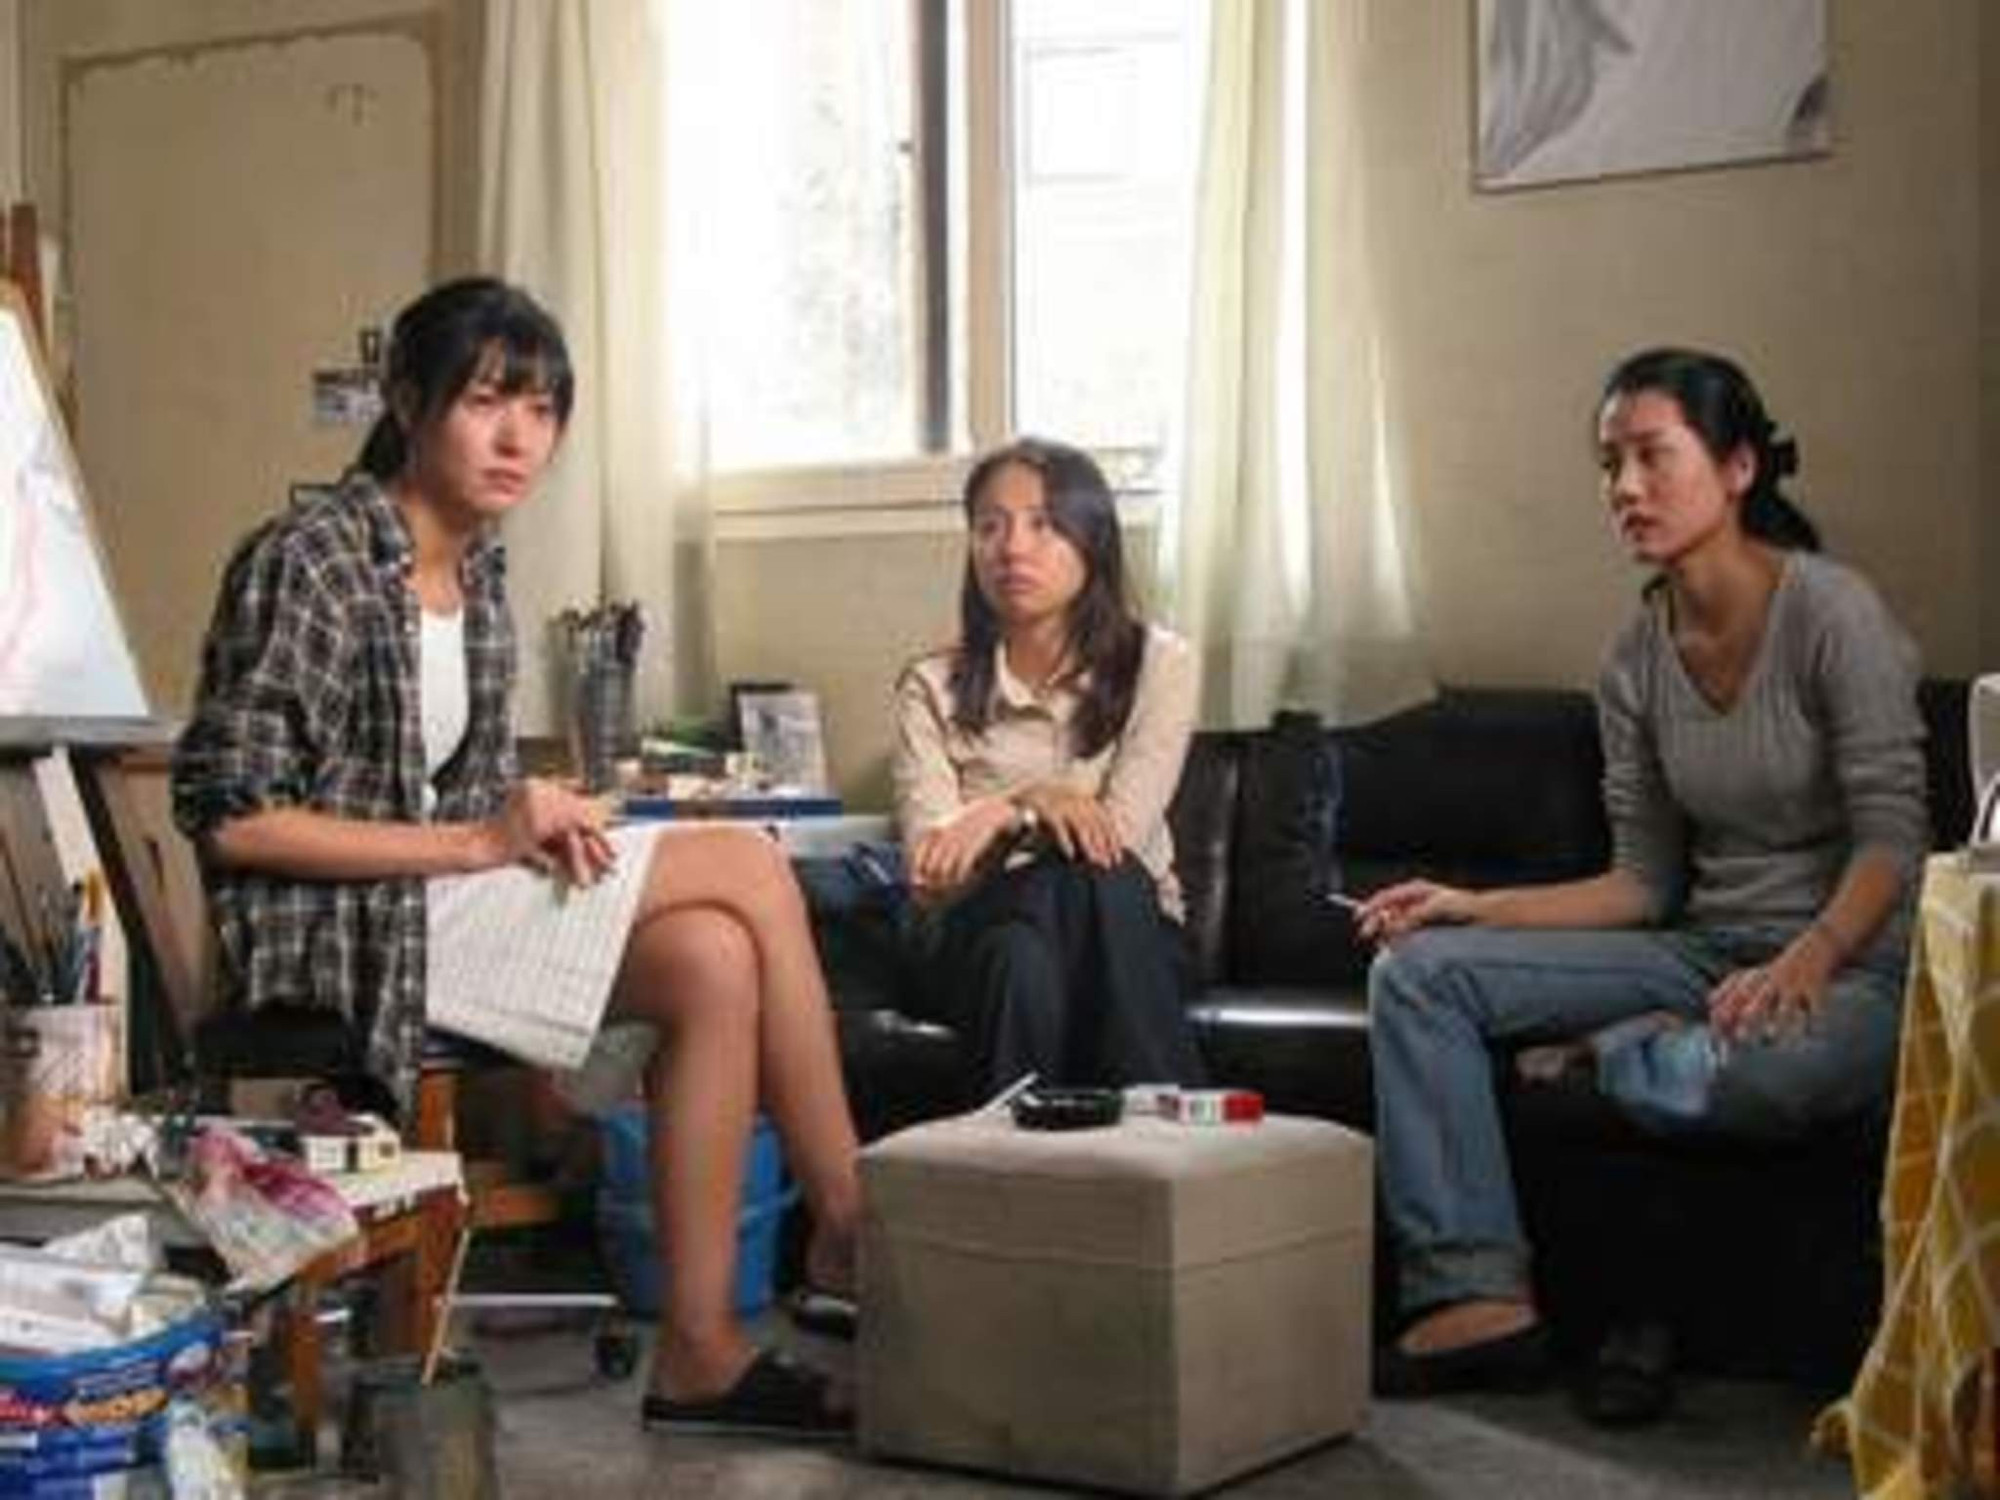 Woman Is the Future of Man. 2004. South Korea/France. Directed by Hong Sang-soo. © MK2